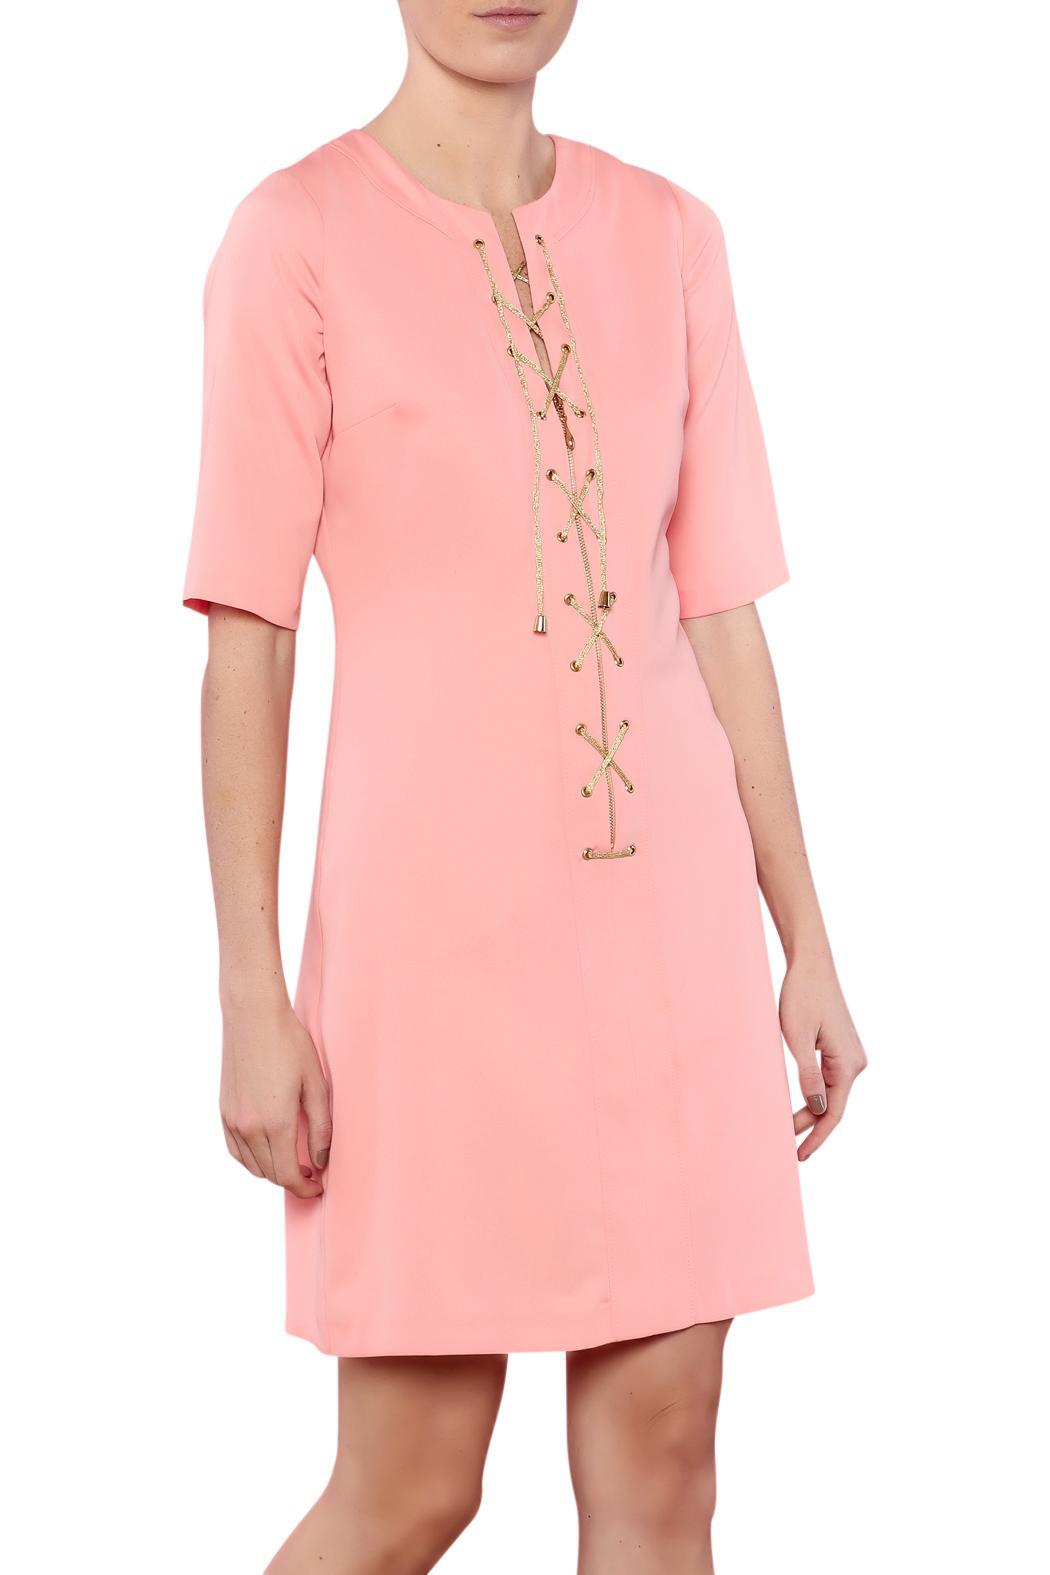 CALORE Lace Up Dress - Main Image